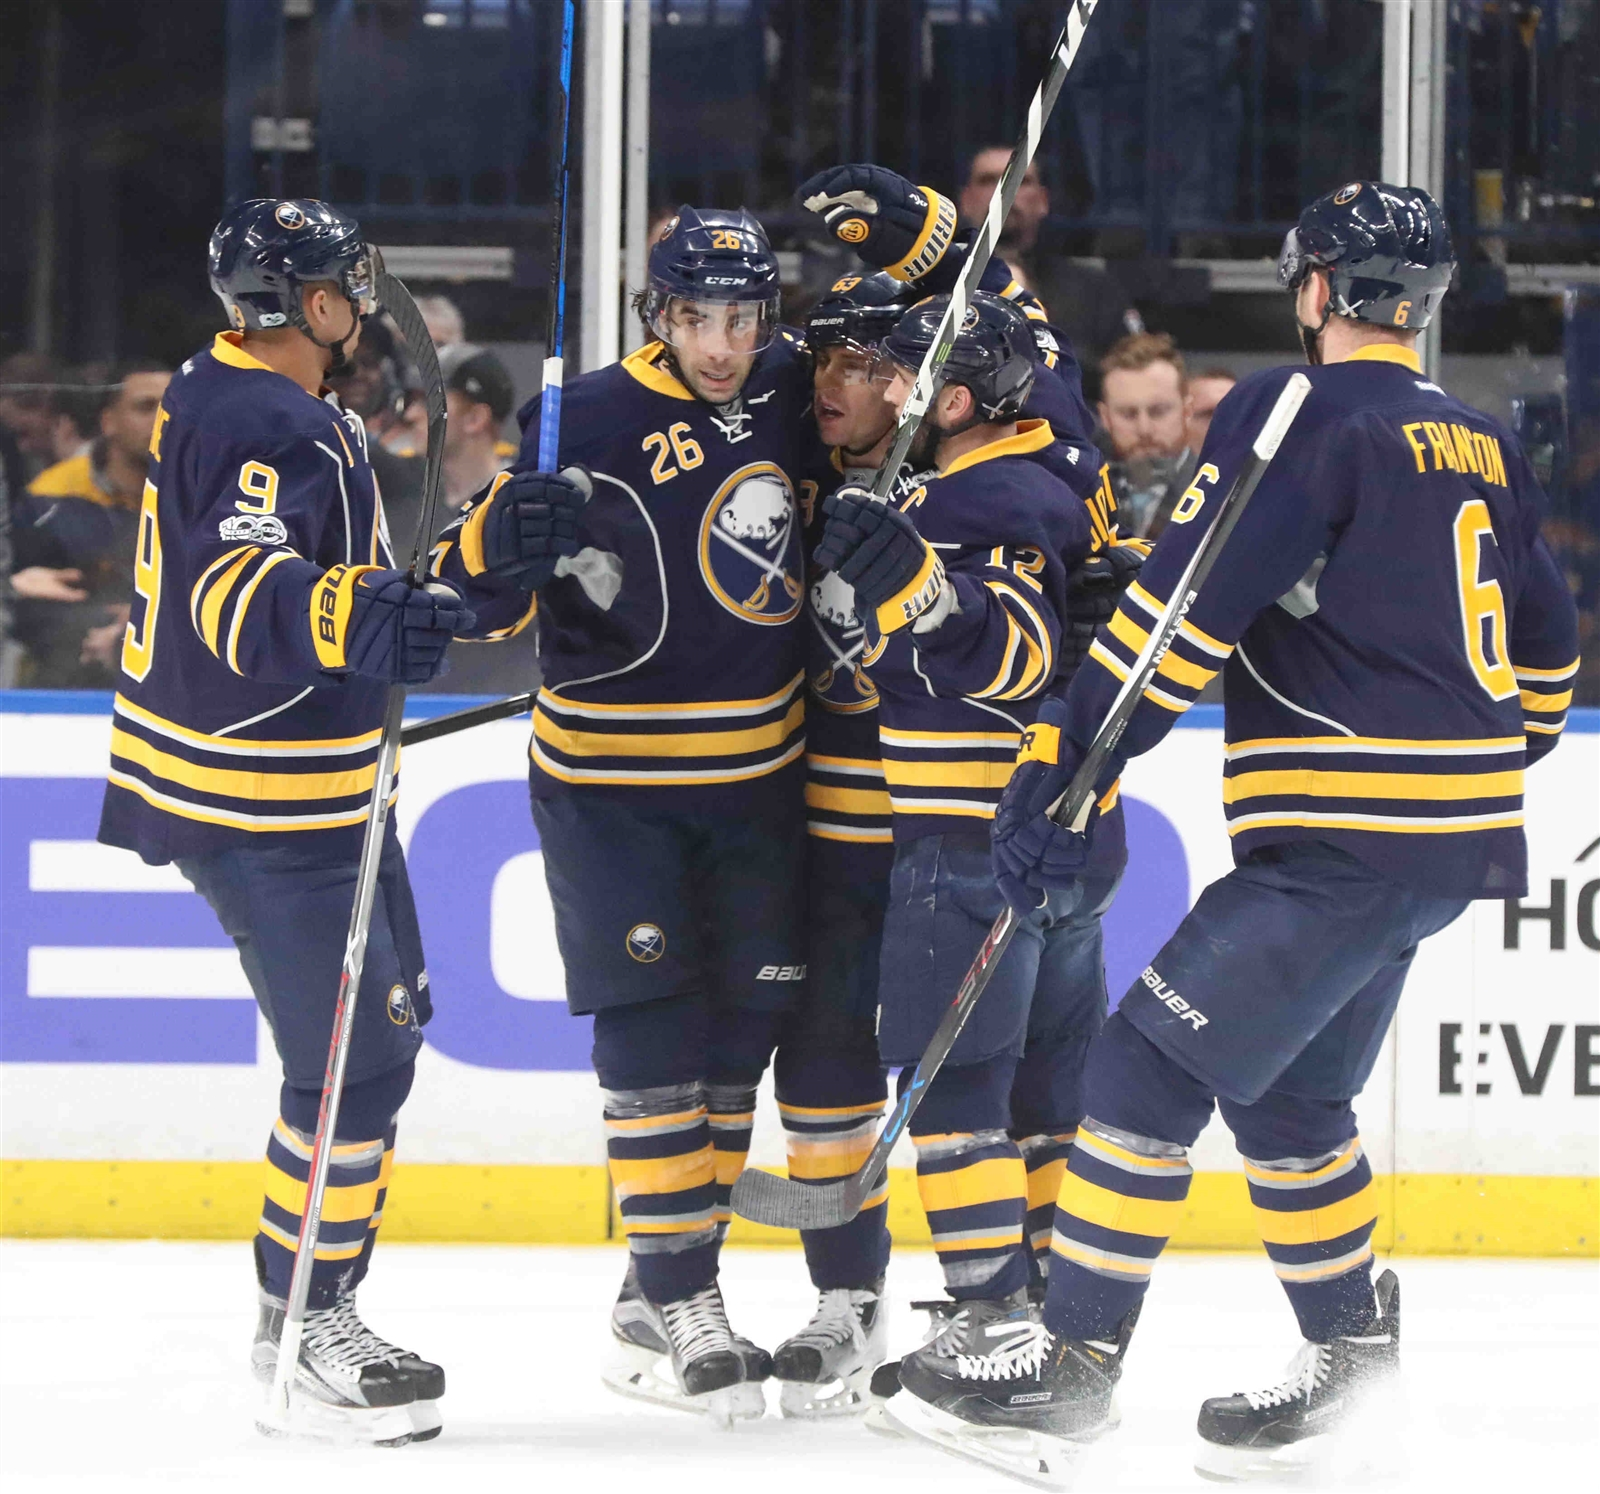 The Sabres had much to celebrate Tuesday night. (James P. McCoy/Buffalo News)